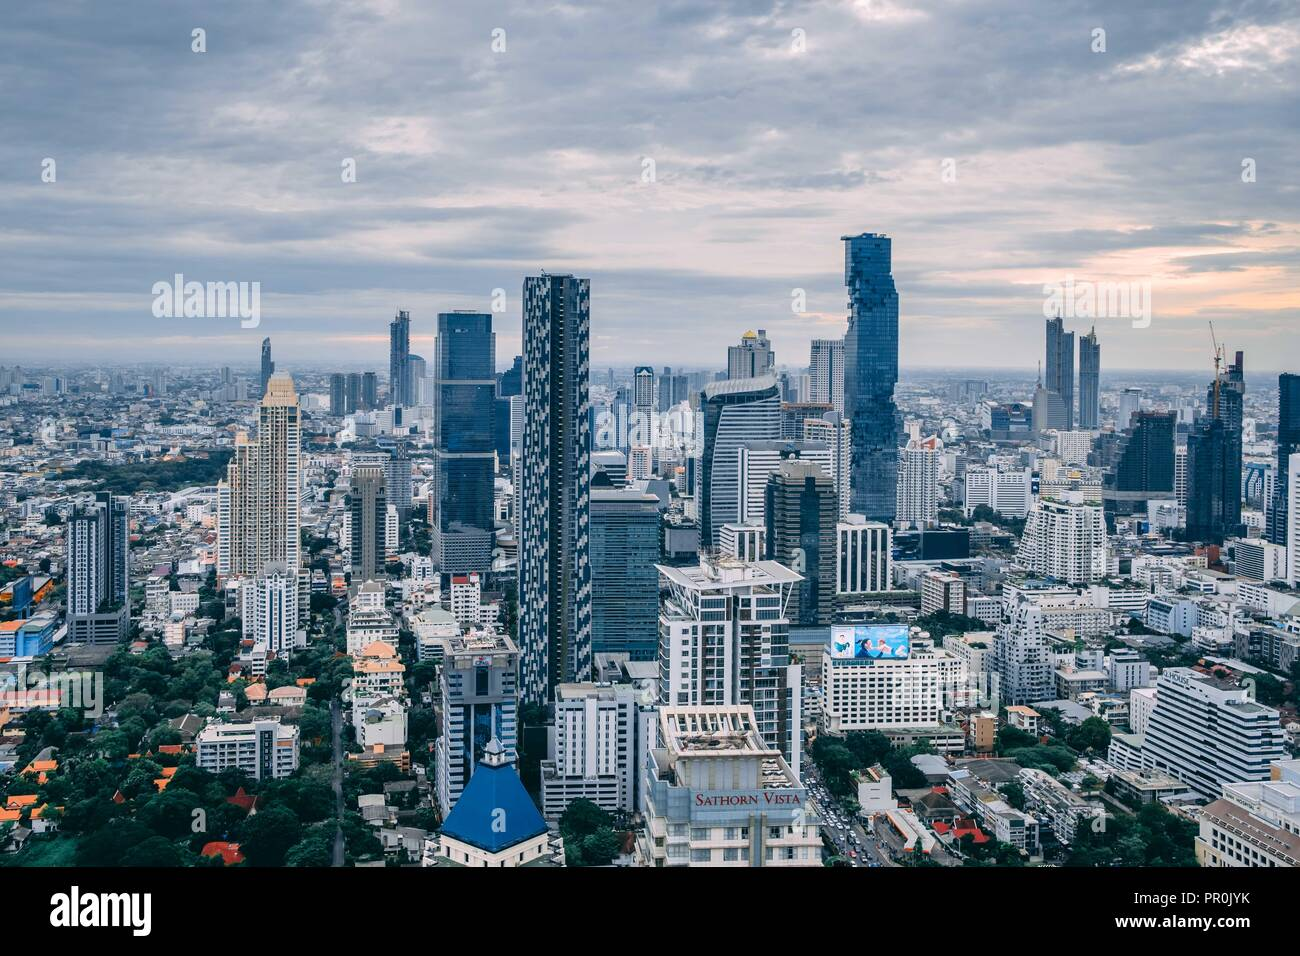 View of Bangkok CBD, Thailand, from the Moon Bar in the Sathorn District - Stock Image